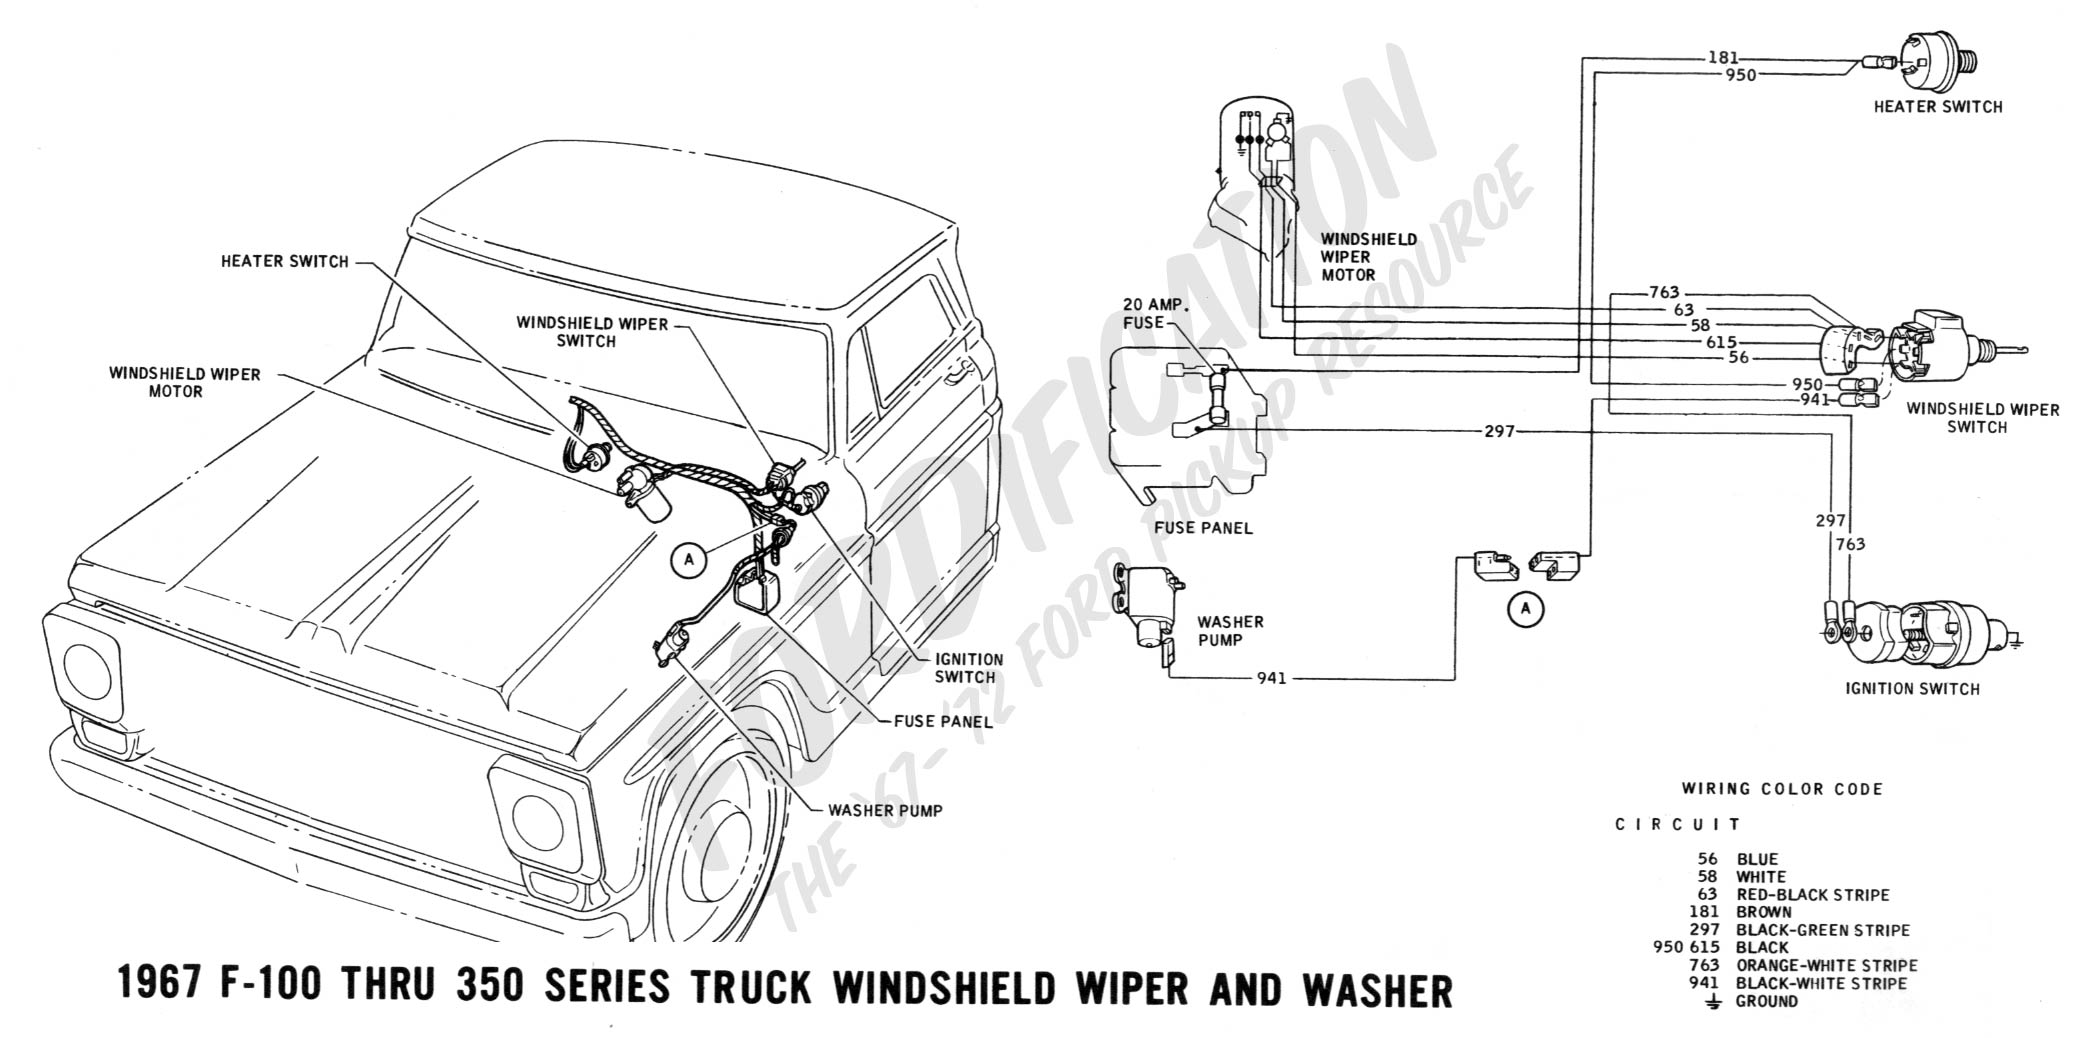 wiring 1967wipers ford truck technical drawings and schematics section h wiring wiper switch wiring diagram at bayanpartner.co